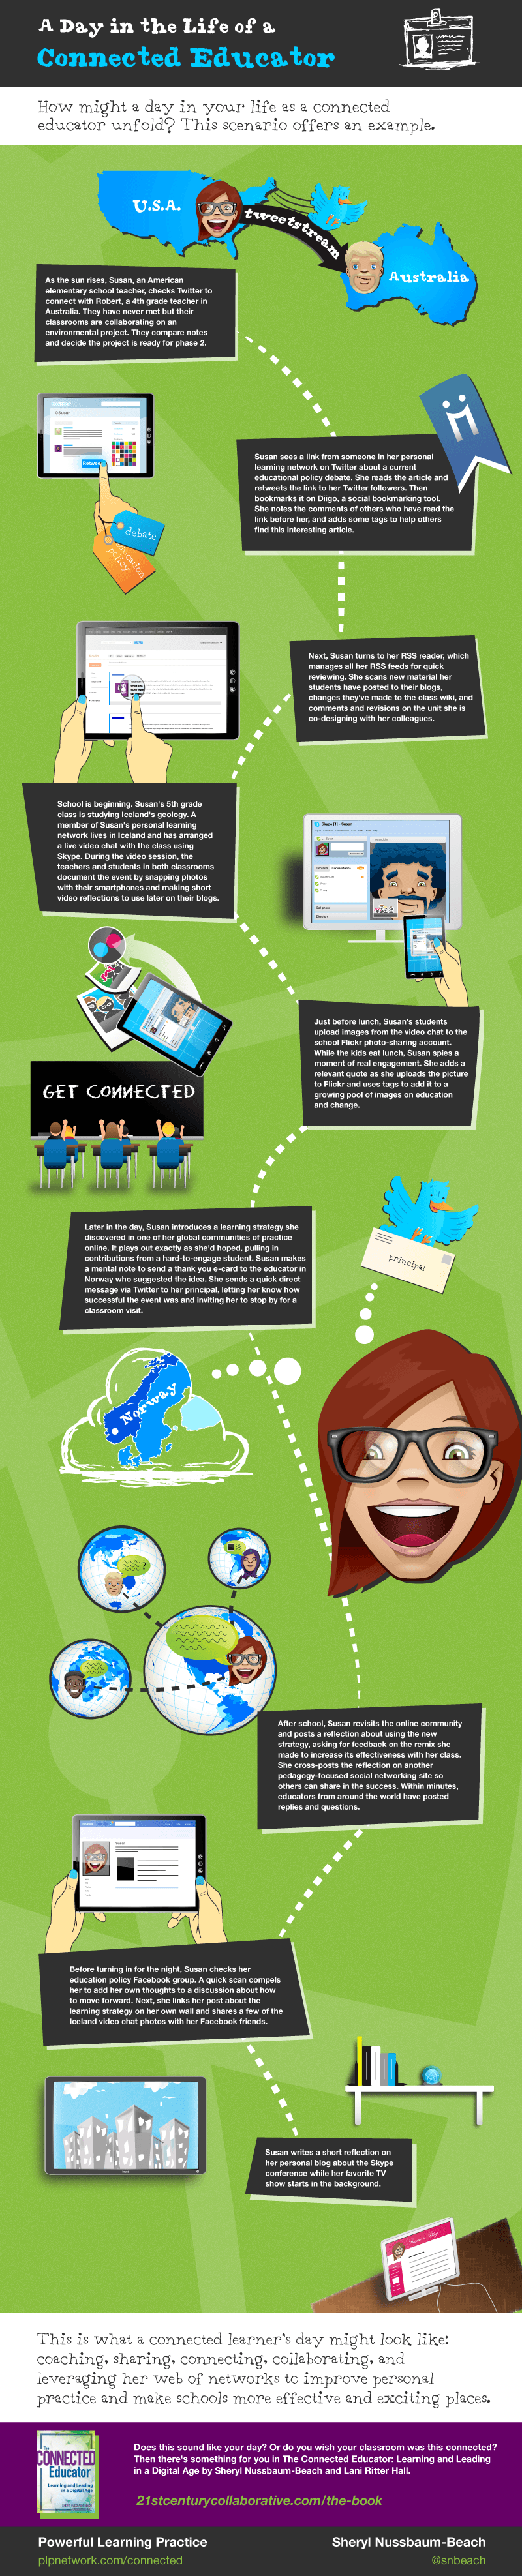 A Day in the Life of a 21st Century Connected Teacher Infographic | e-Learning Infographics